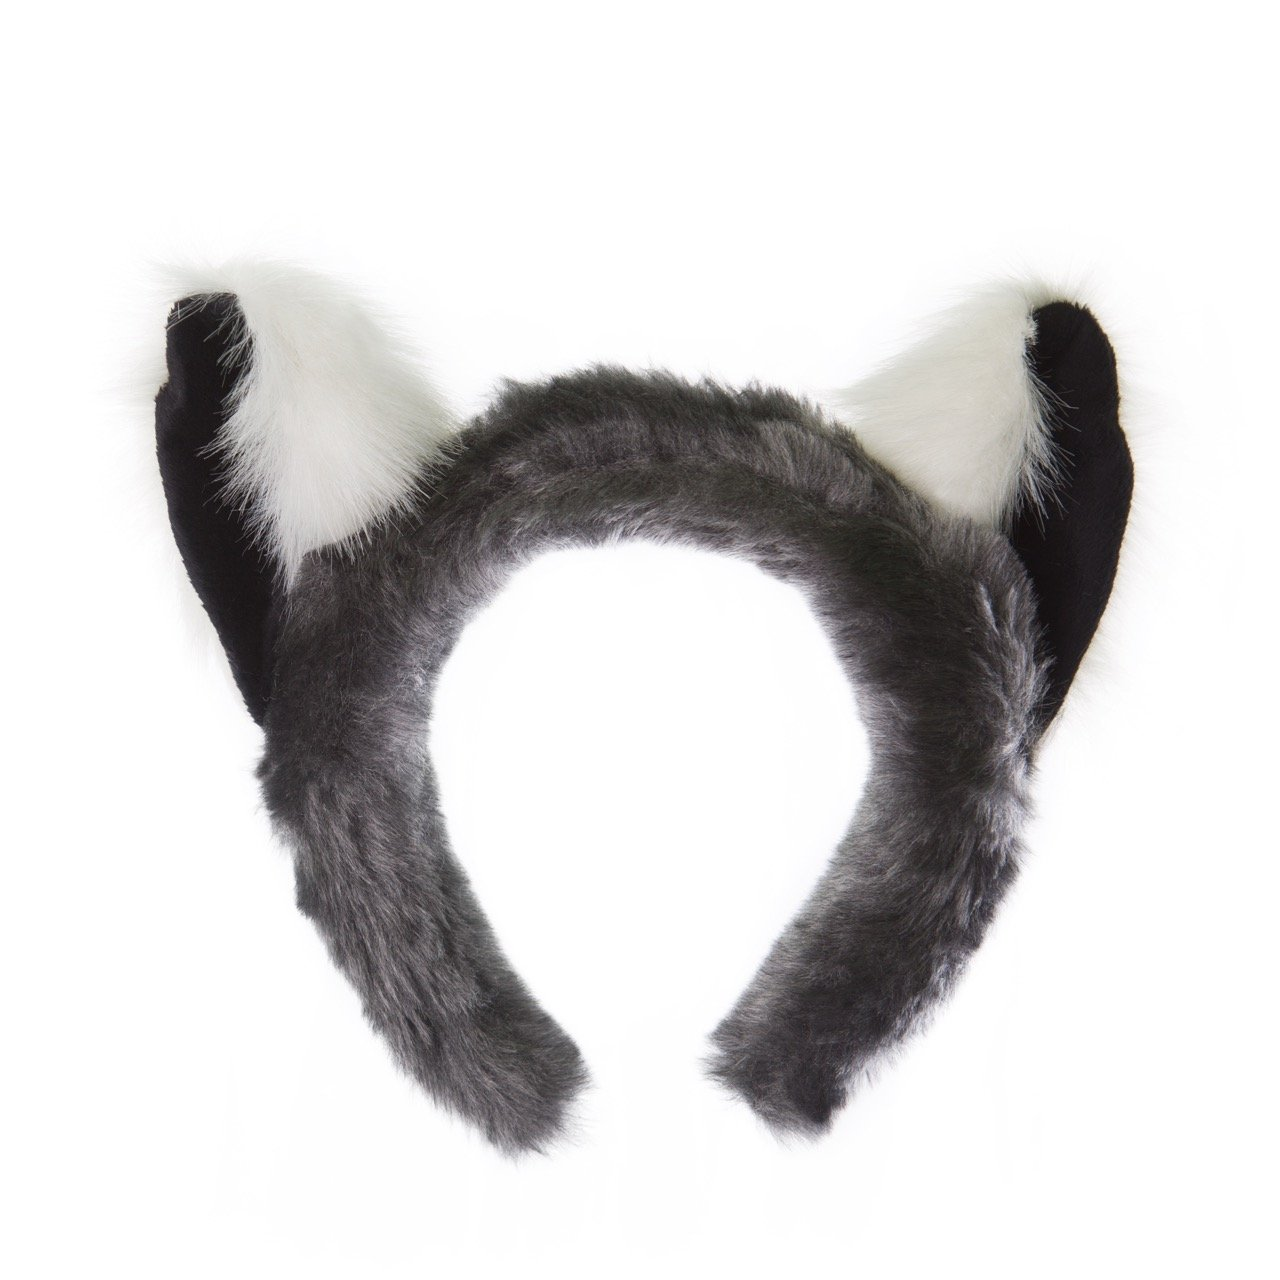 Wildlife Tree Plush Zoo Animal Ears Headband for Animal Costumes and Cosplay or Theatre